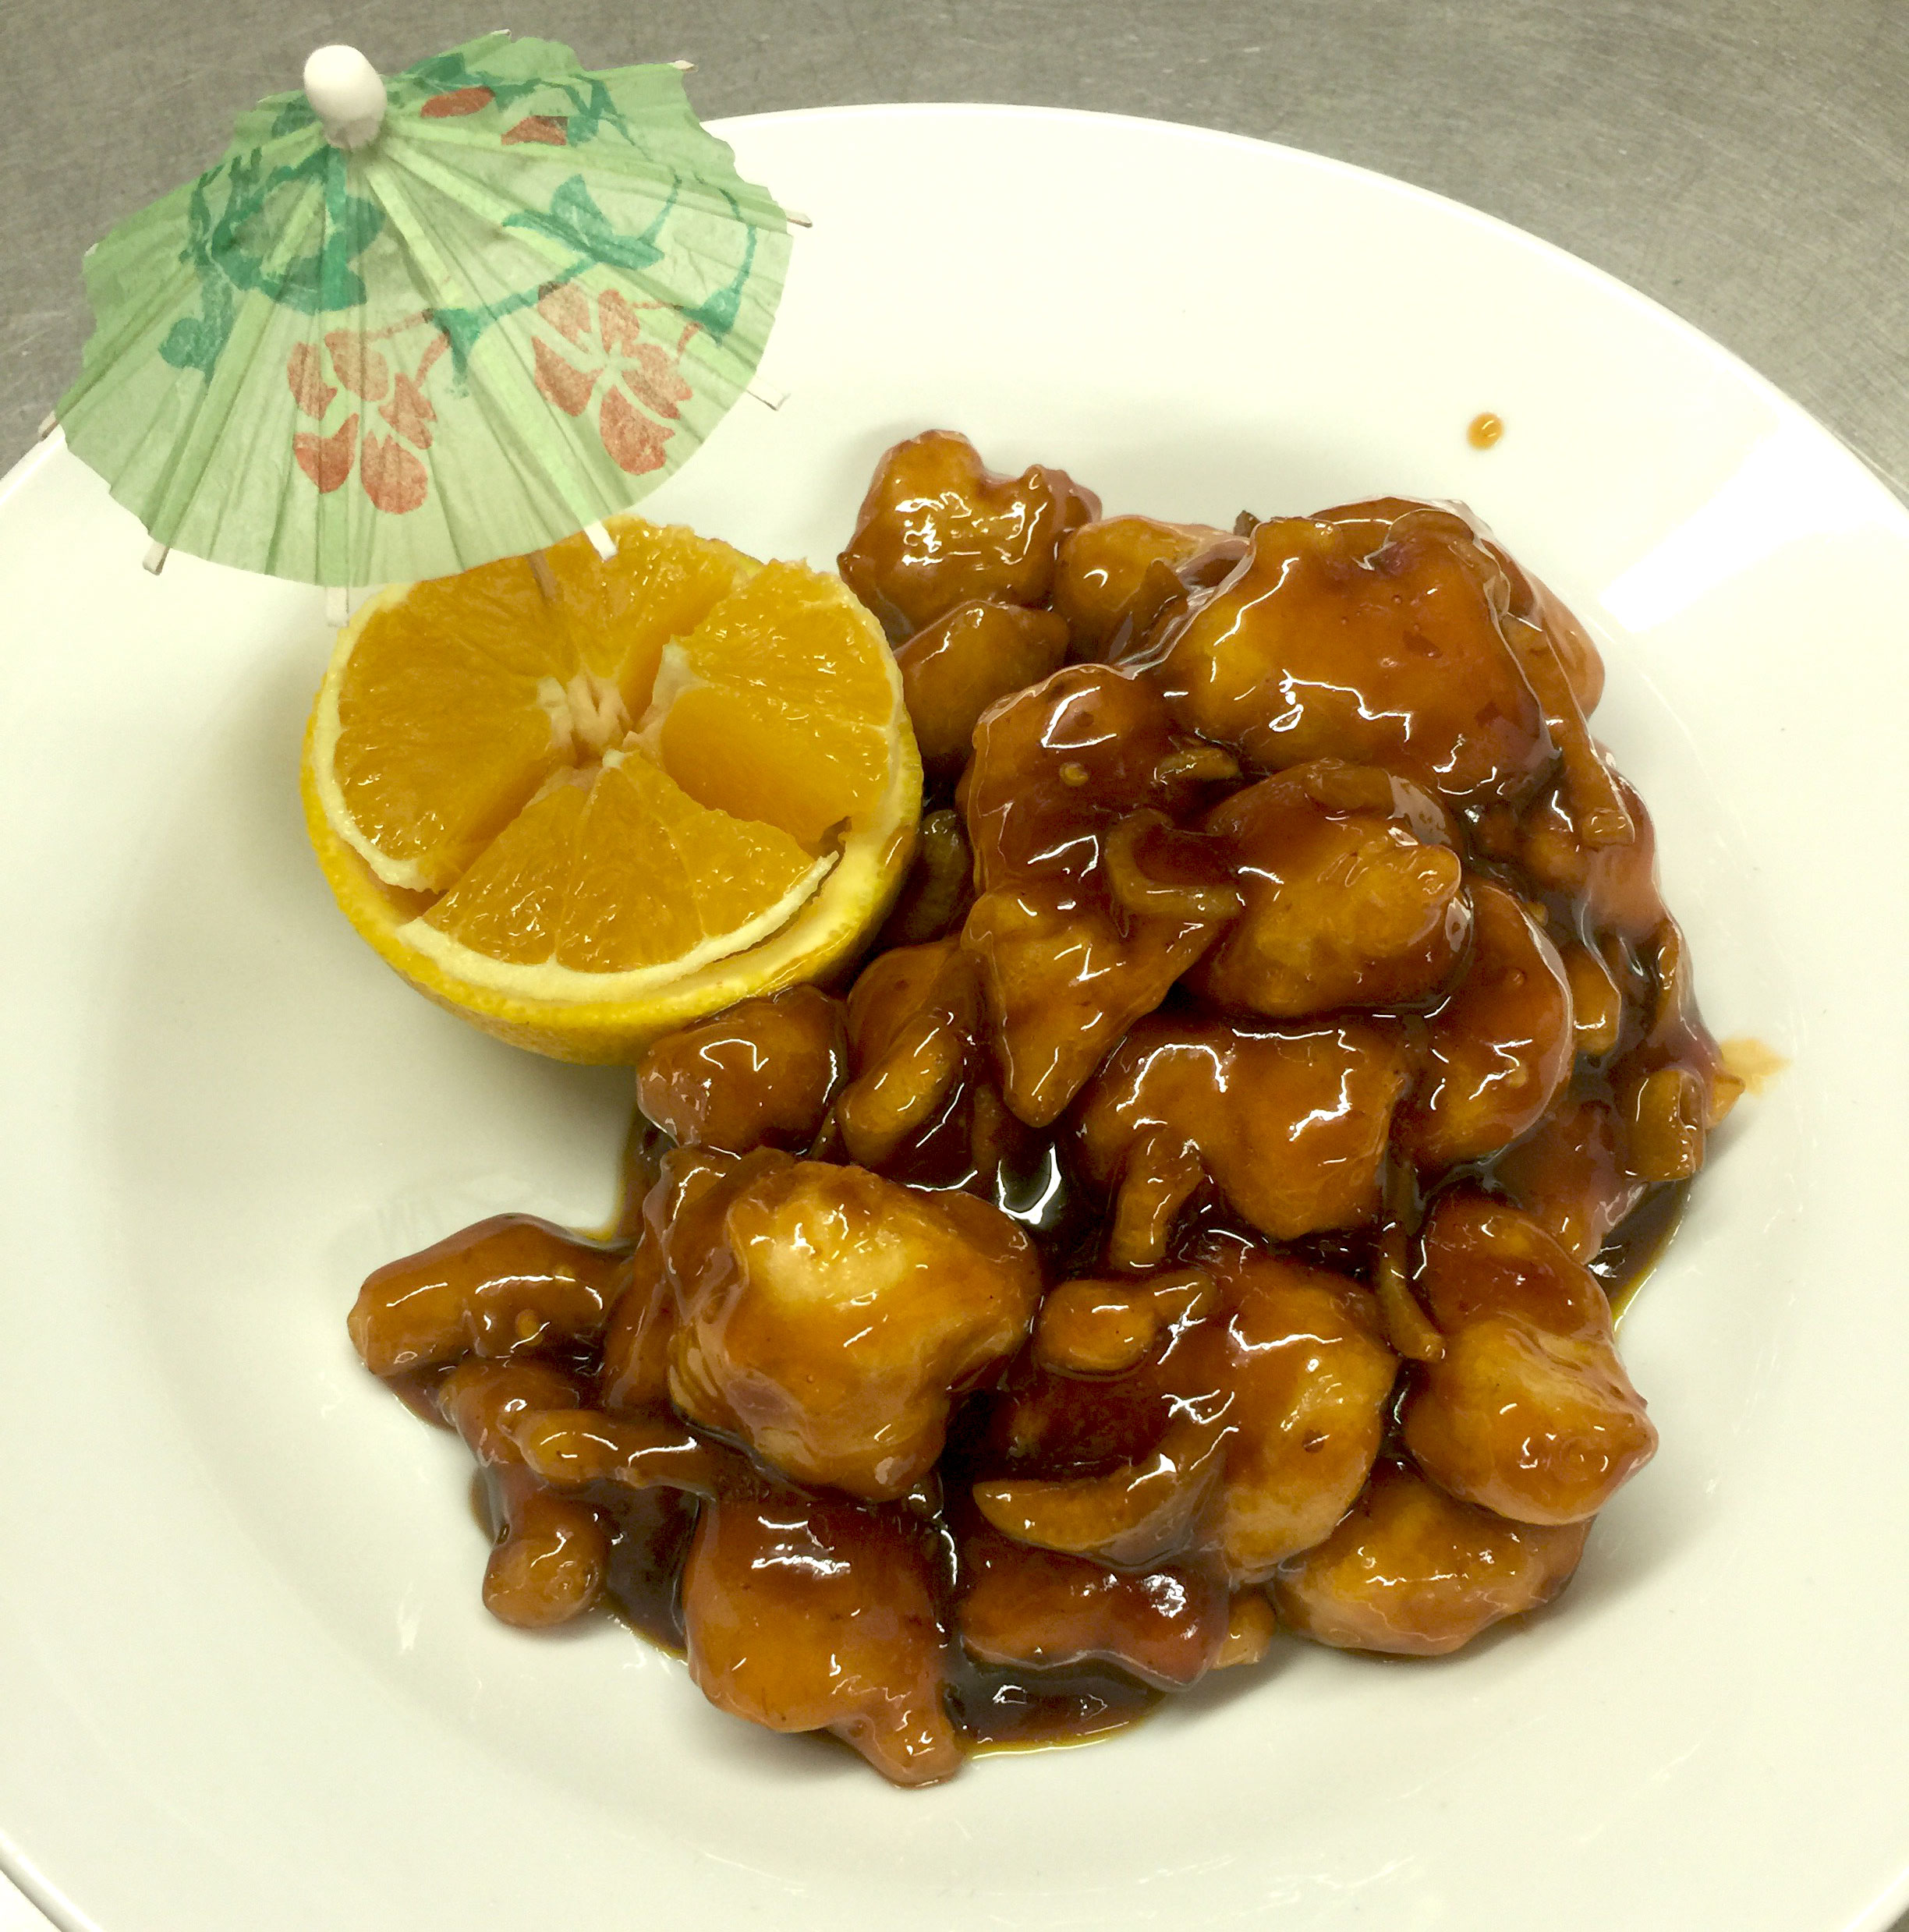 158. Orange Peel Chicken